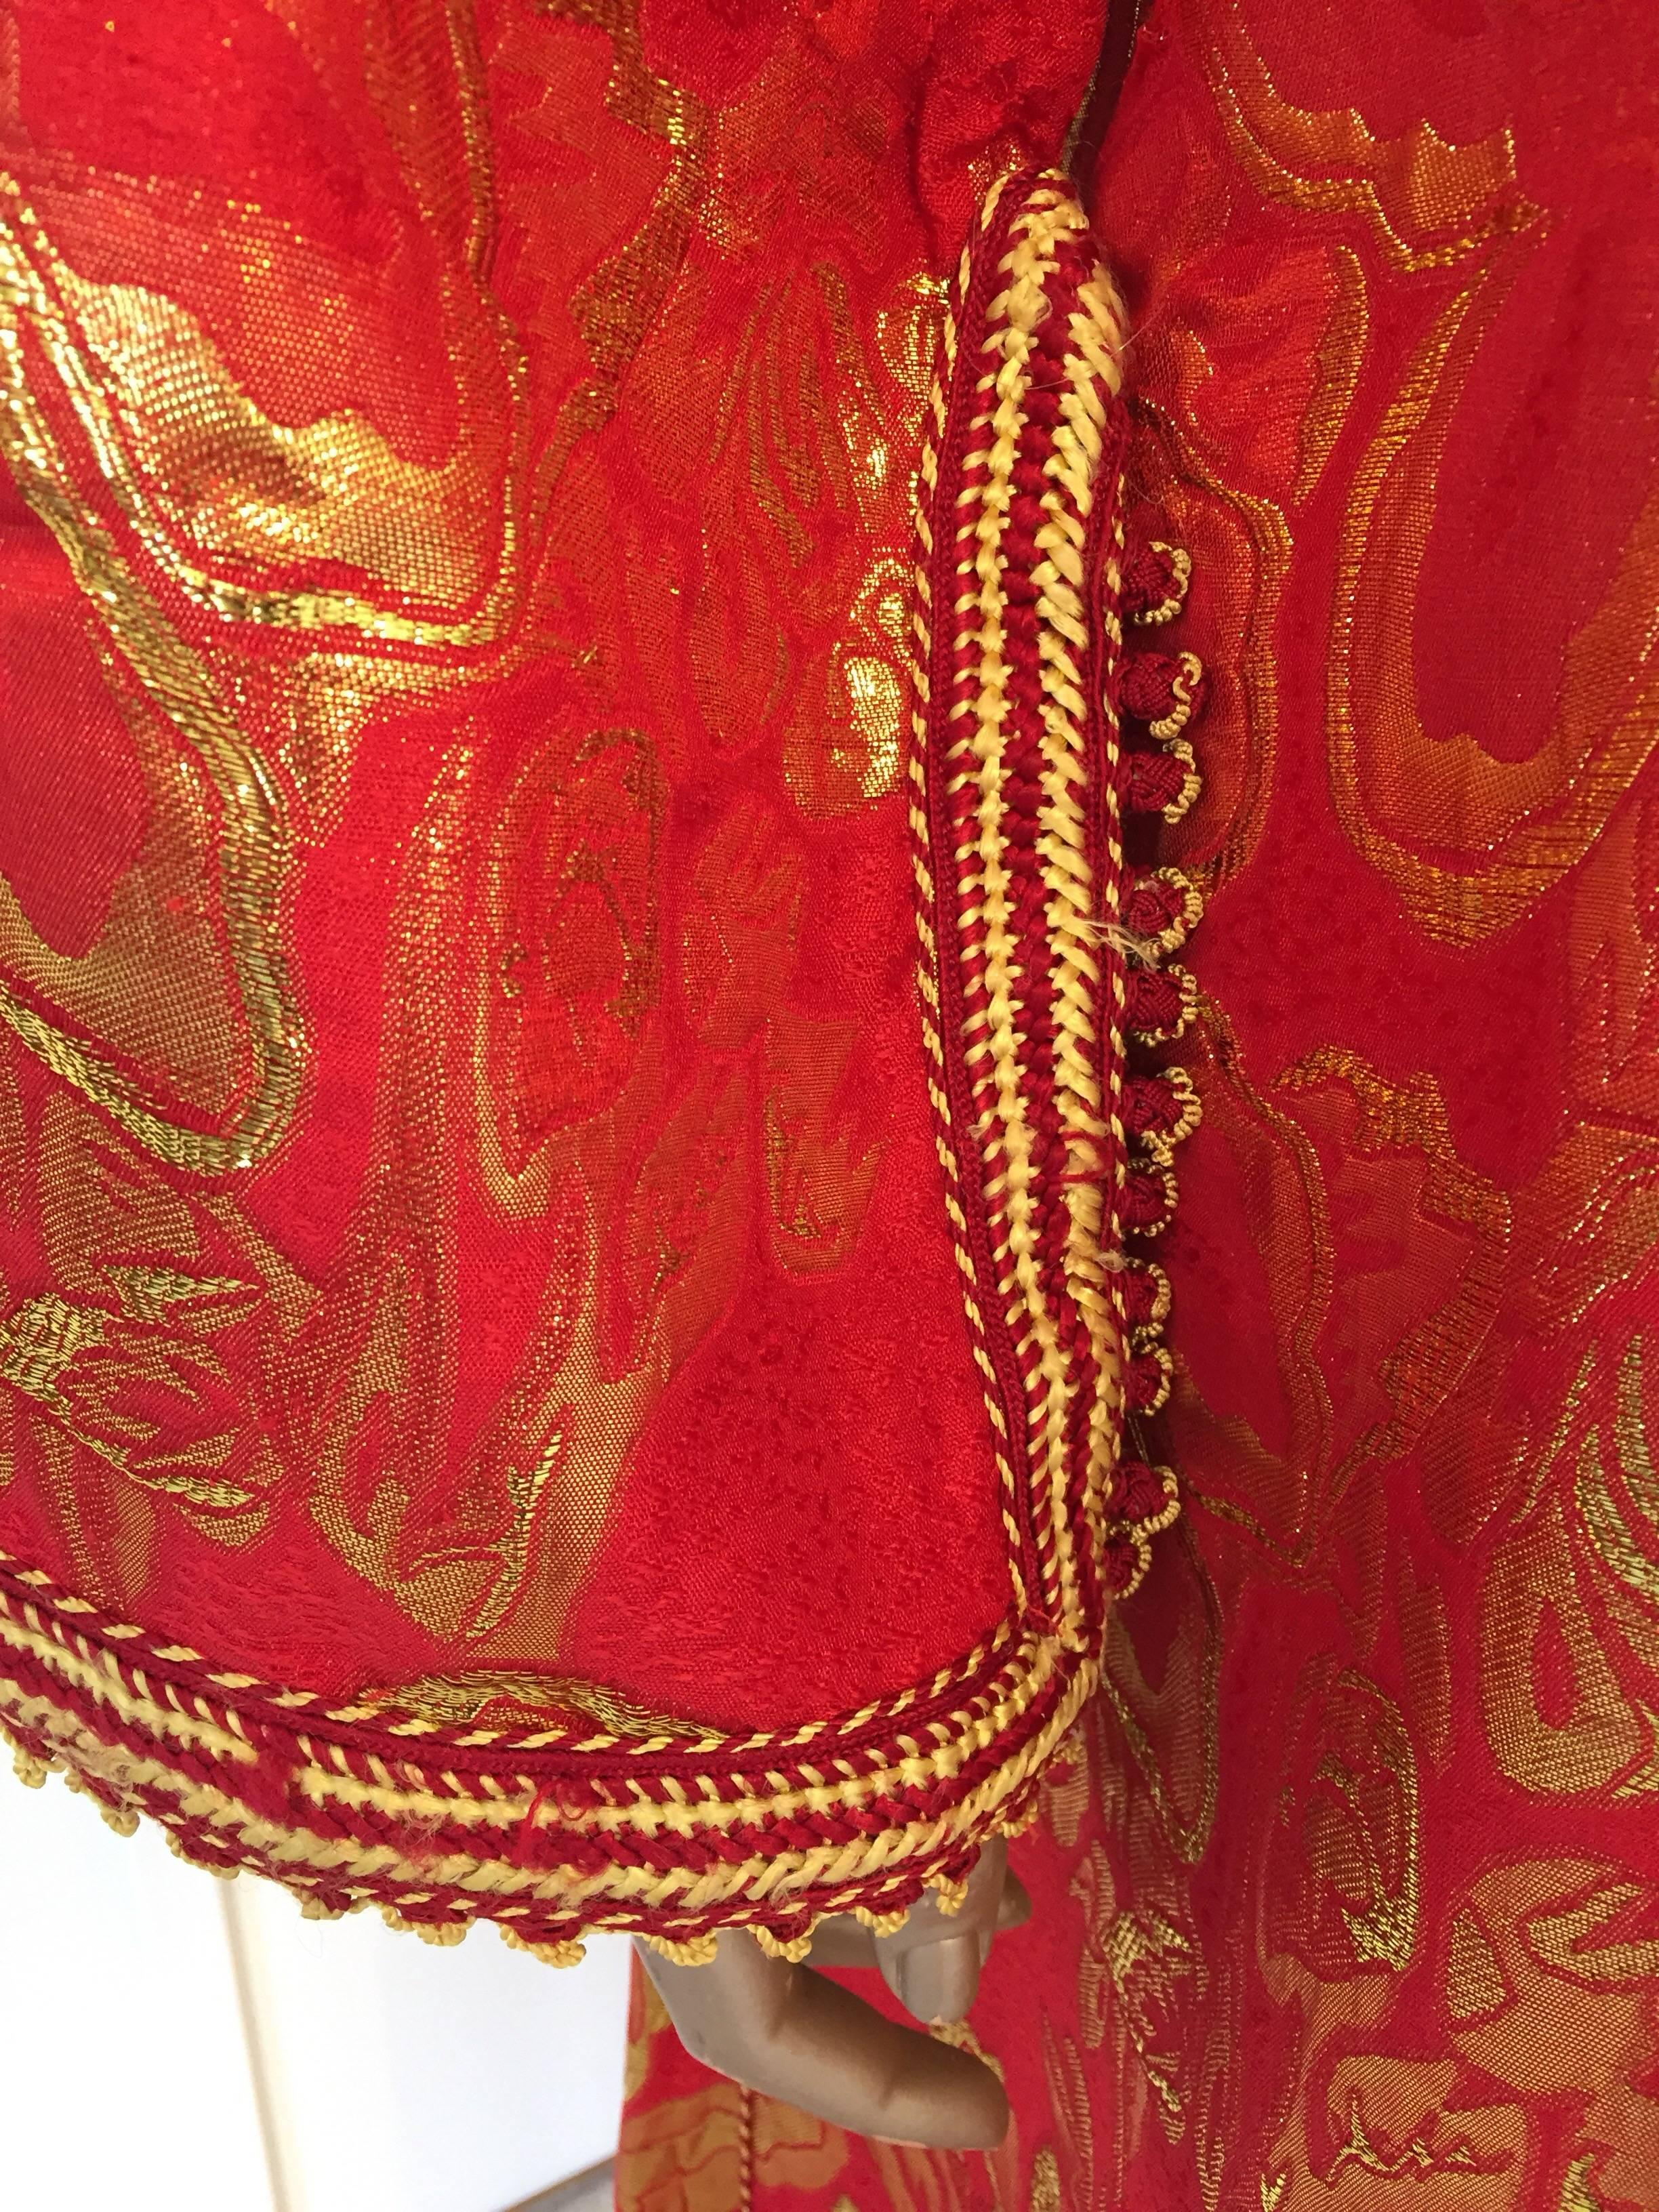 Other Antique Textiles Vintage Gold Metallic Trim With Red Embroidery 1½ Inches Wide Skilful Manufacture Antiques